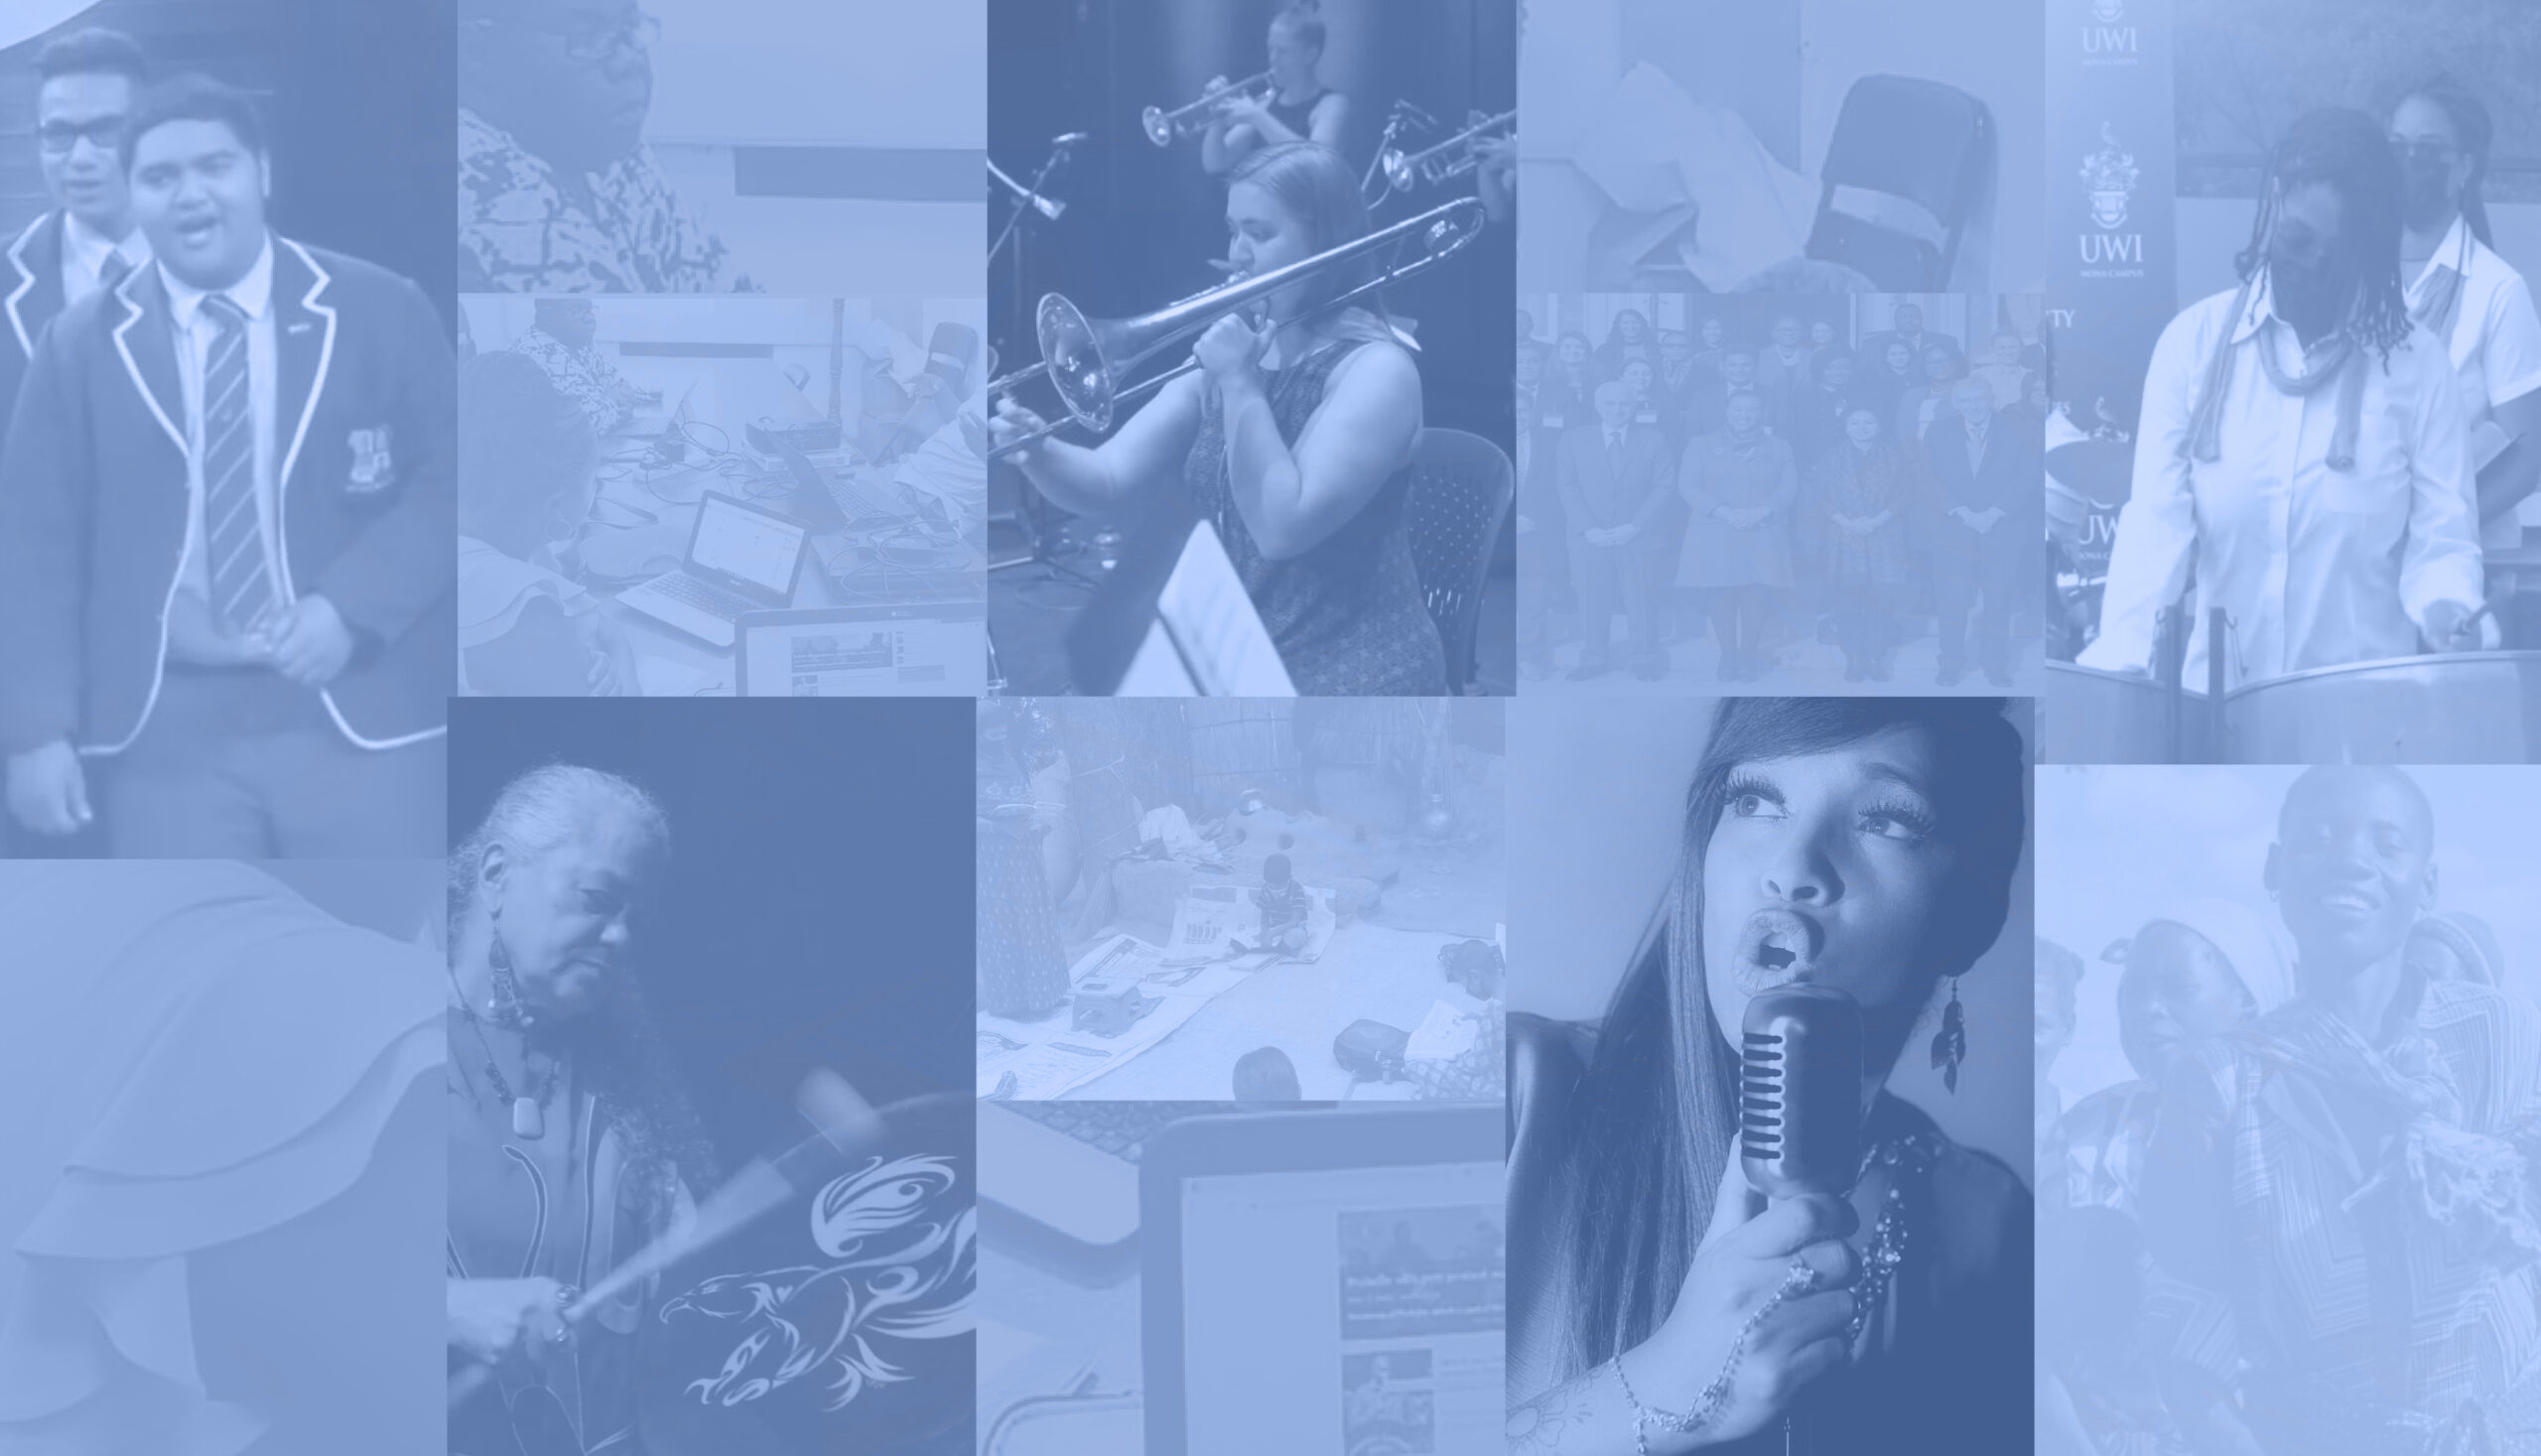 Collage of musical images